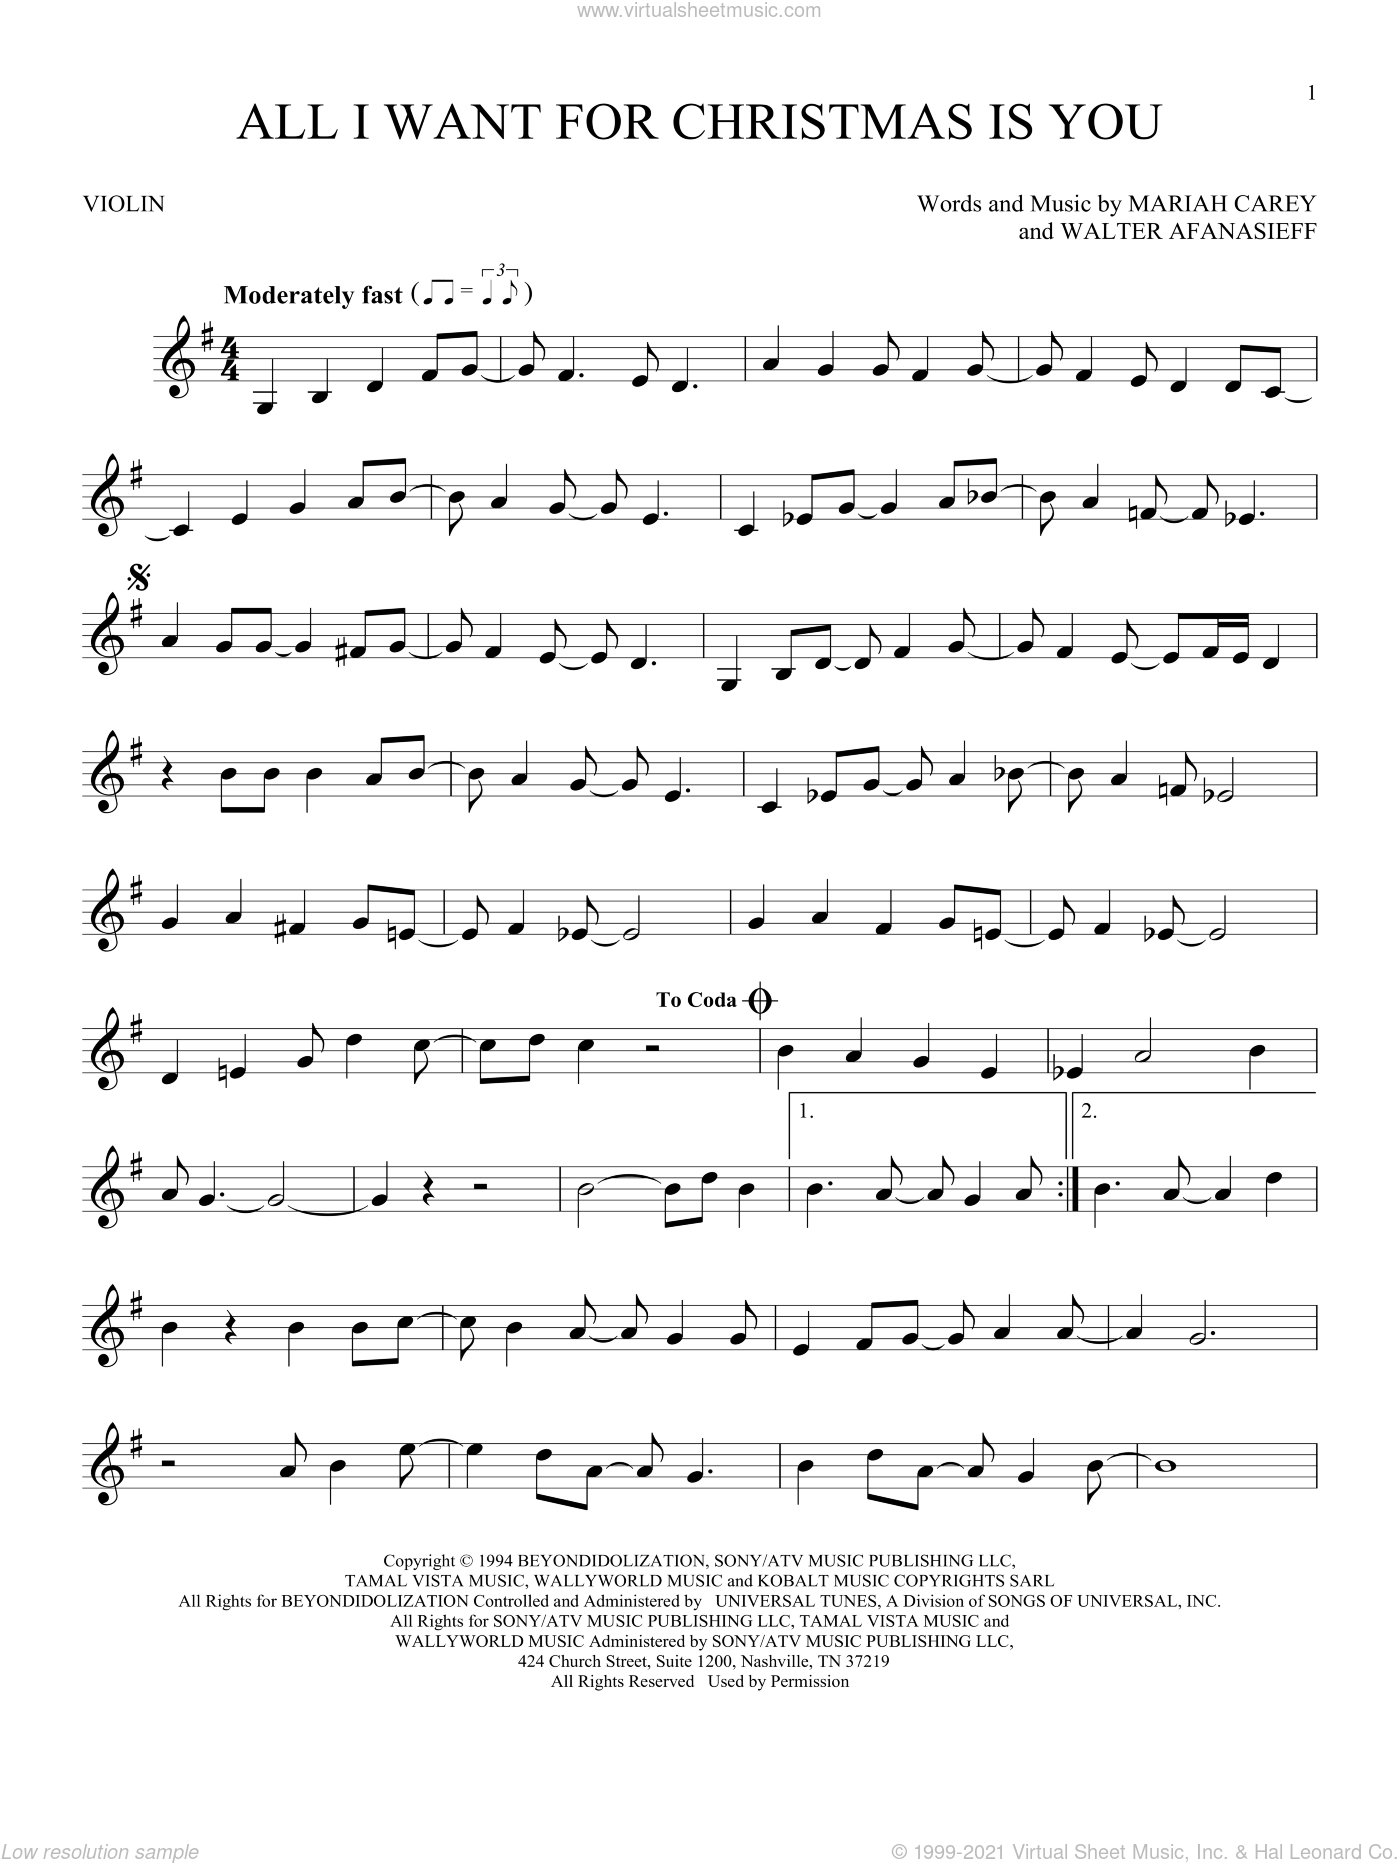 Carey - All I Want For Christmas Is You sheet music for violin solo